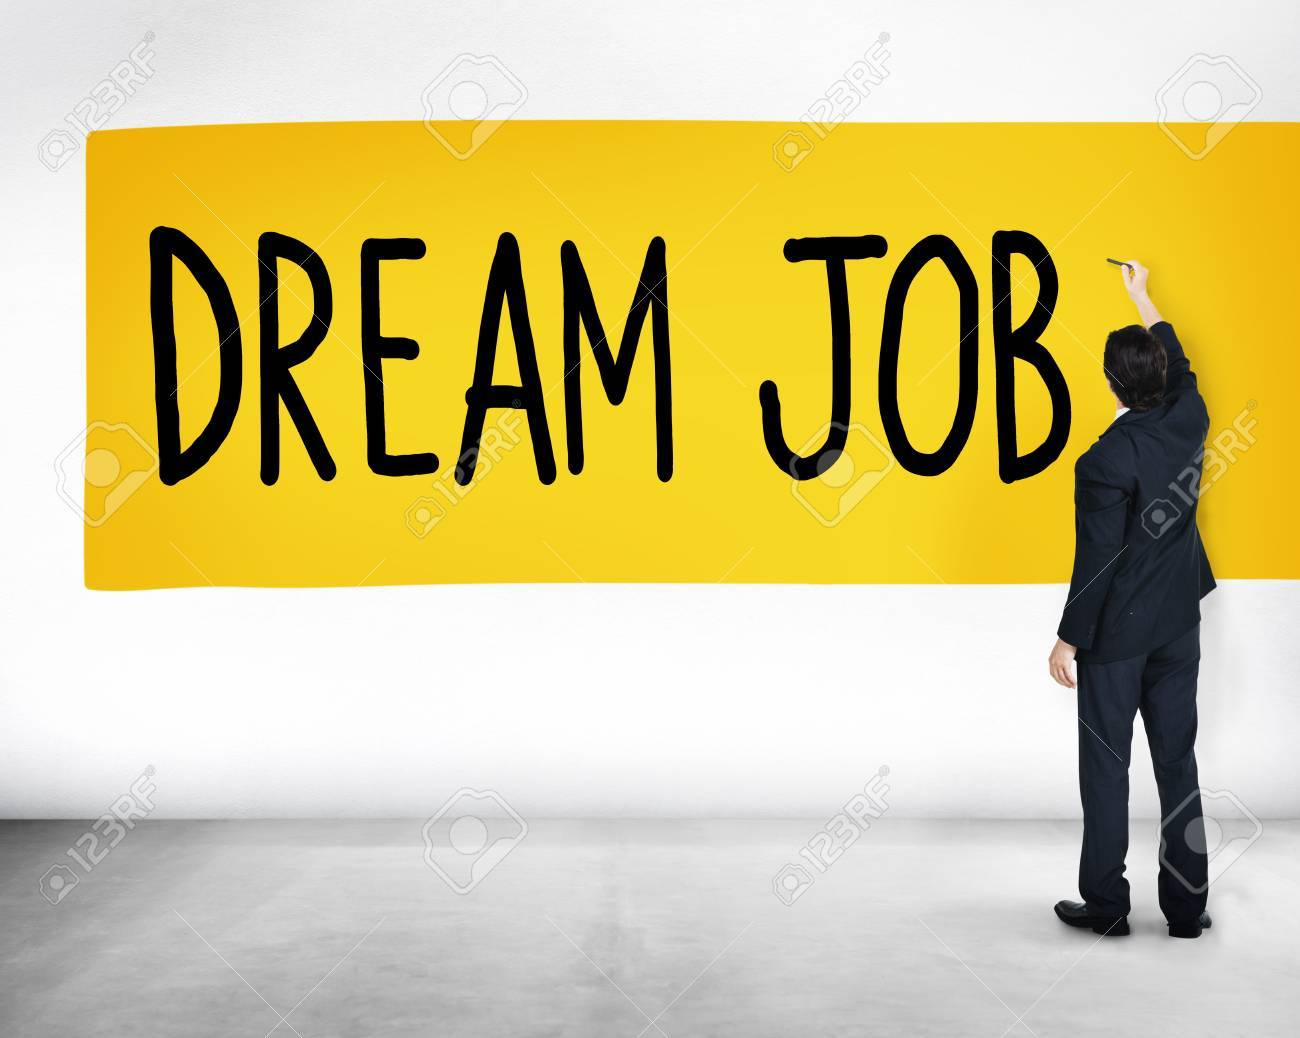 dream job occupation career aspiration concept stock photo dream job occupation career aspiration concept stock photo 45622743